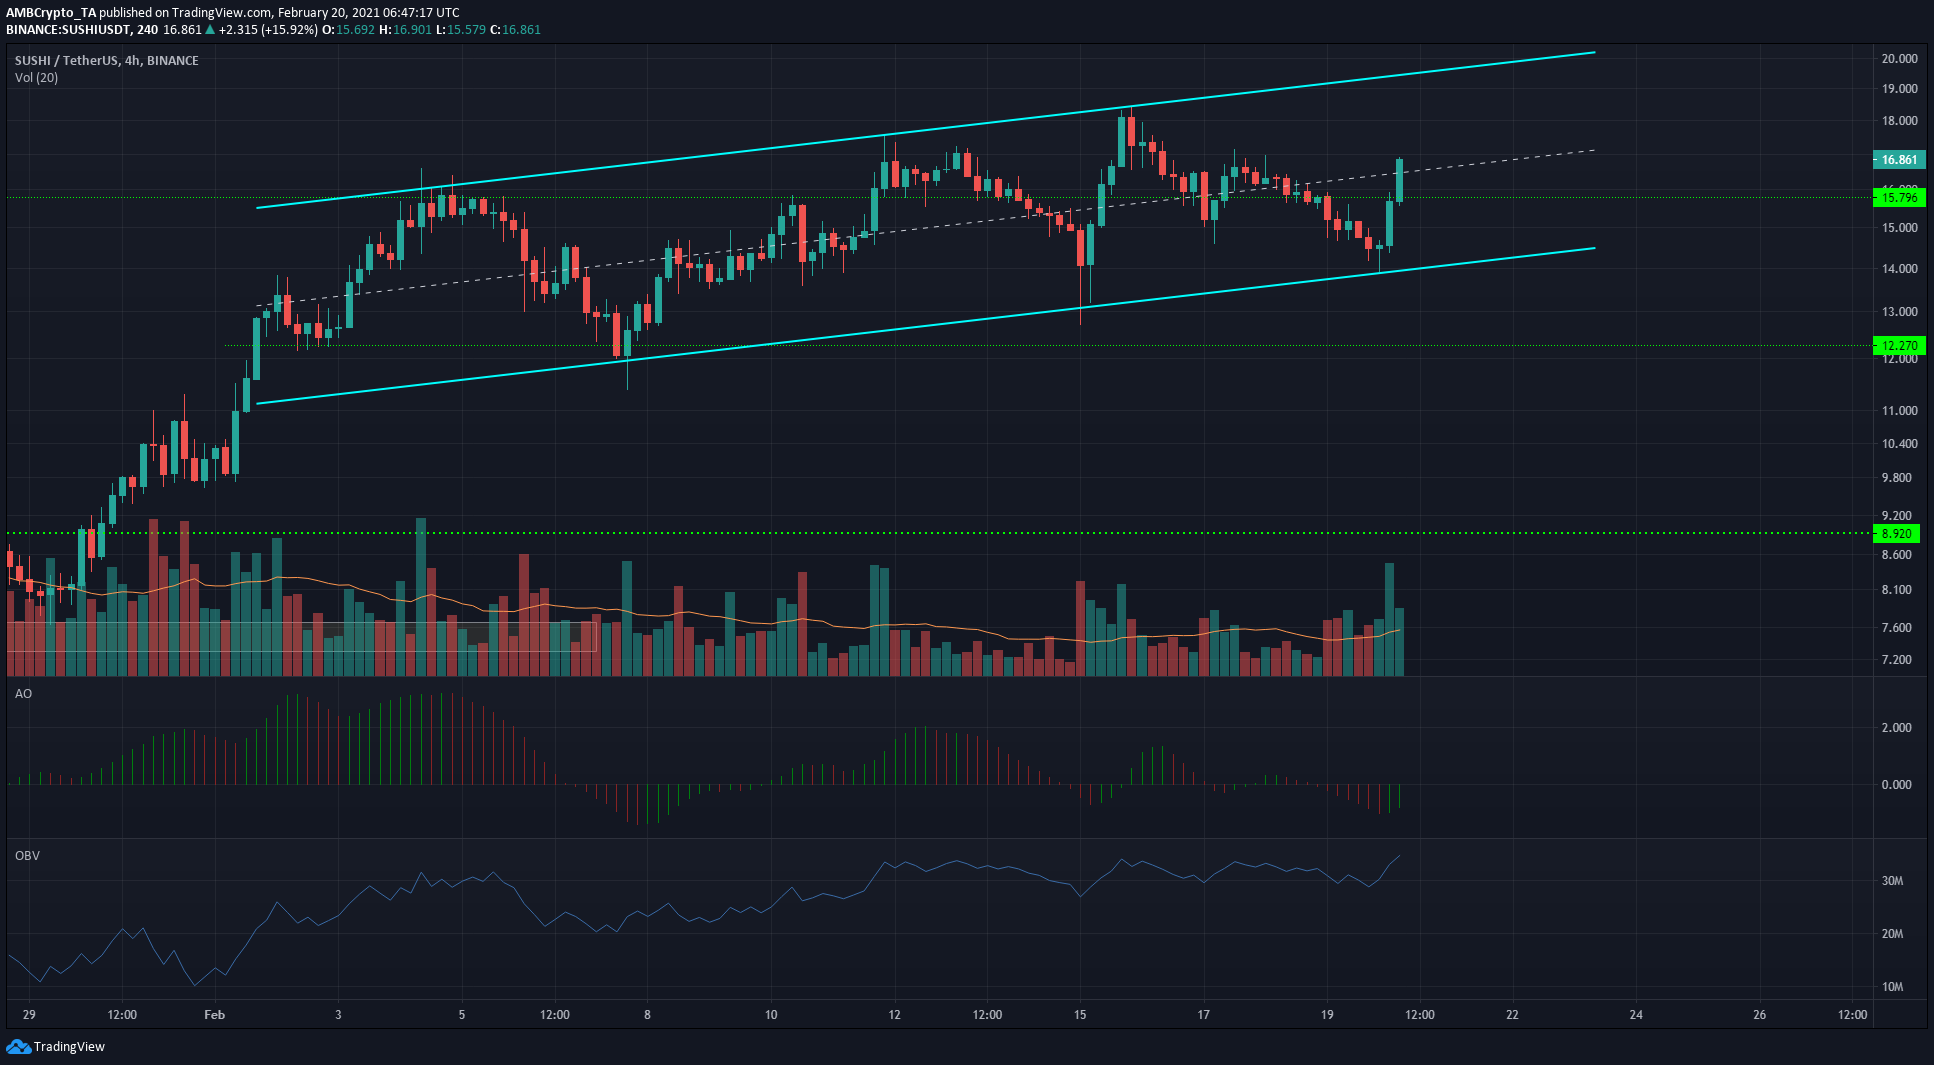 Chainlink, Aave, SushiSwap Price Analysis: 20 February